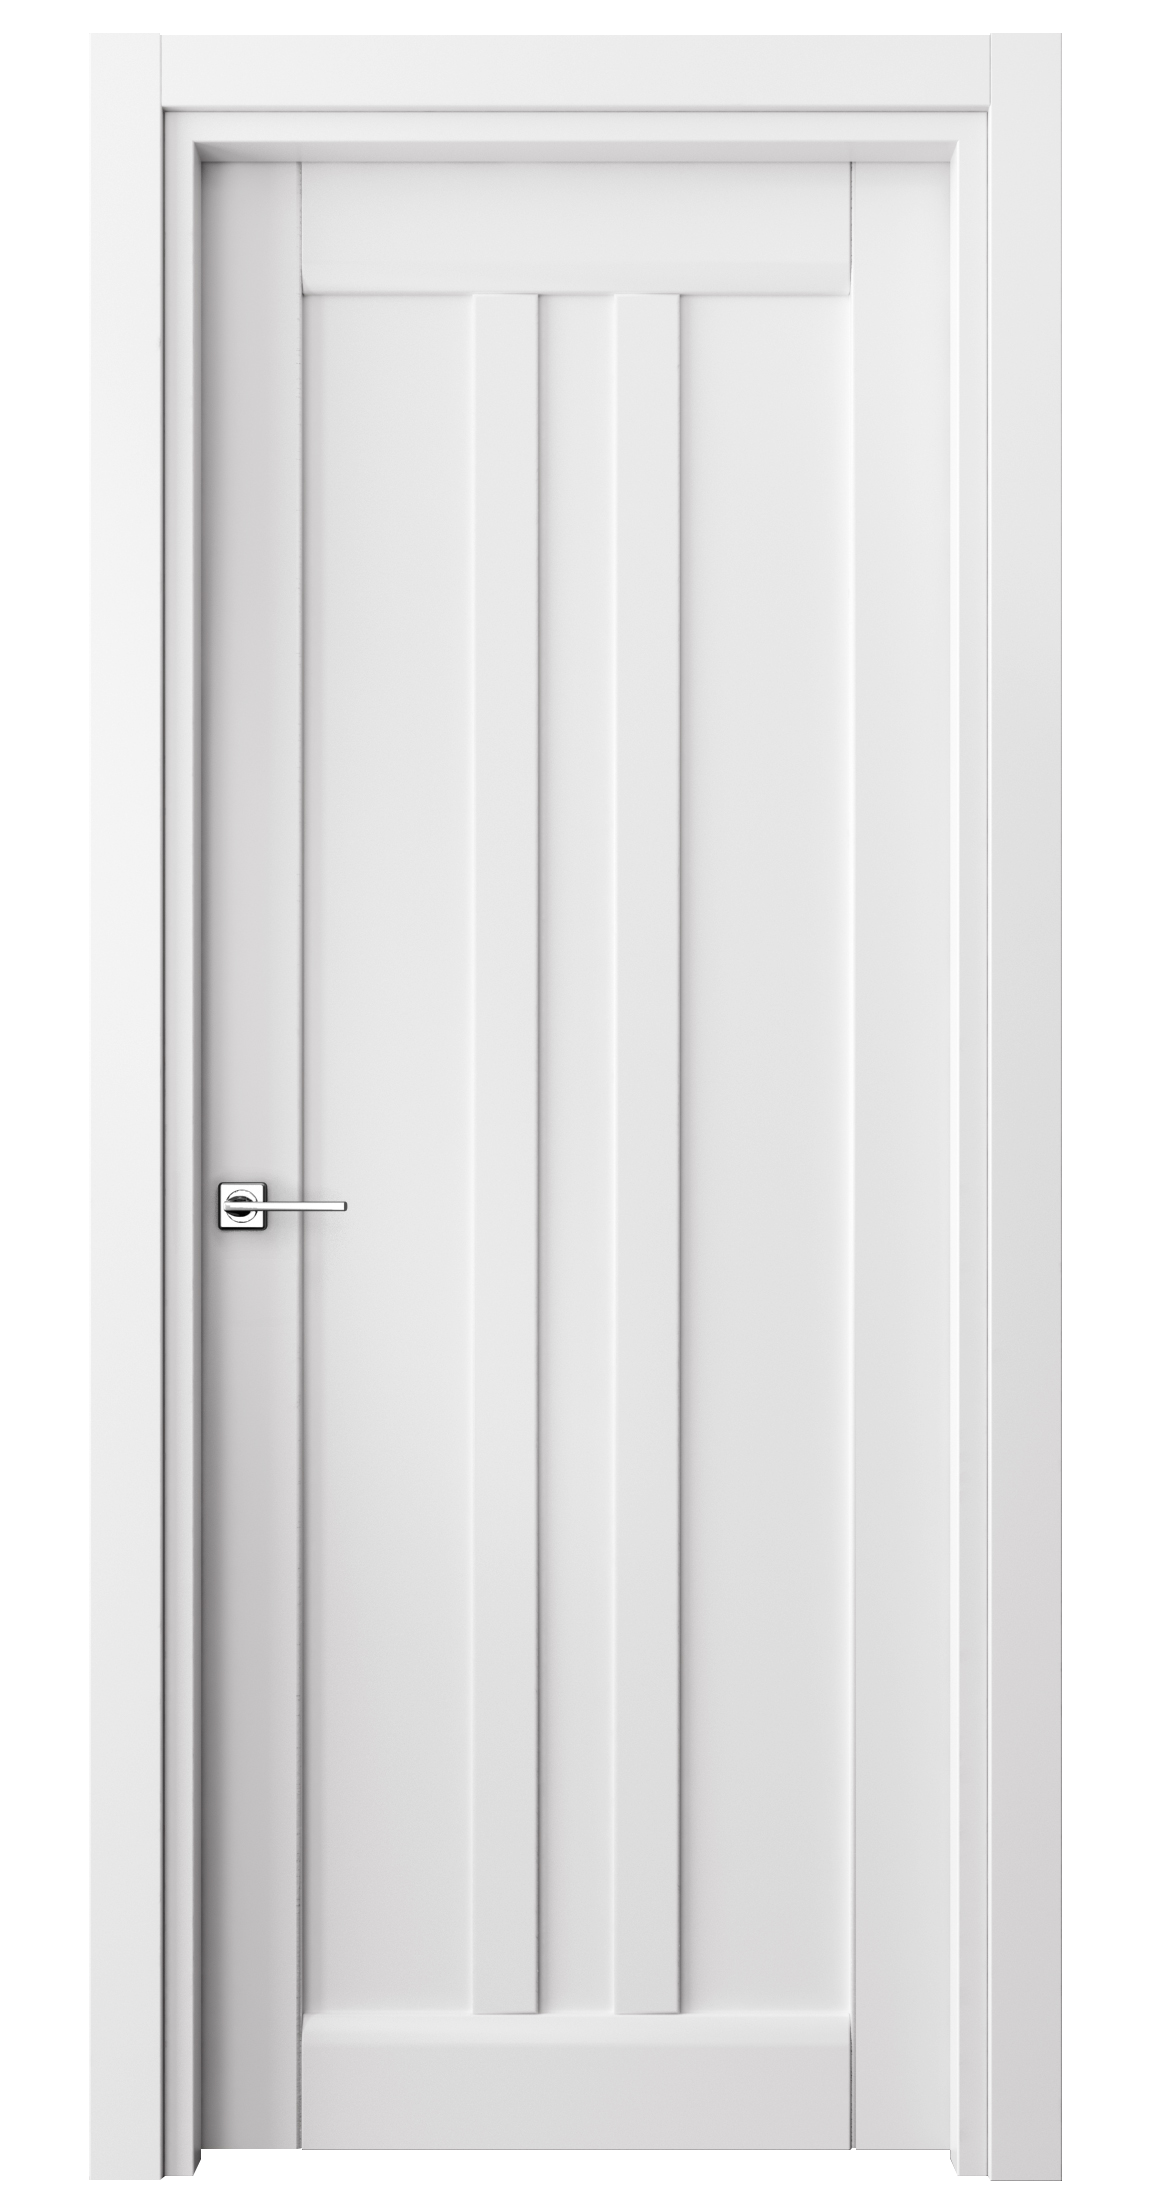 Vario 0221 Interior Doors Beech Comes In The Following Configurations Single Swing Door Double Pocket